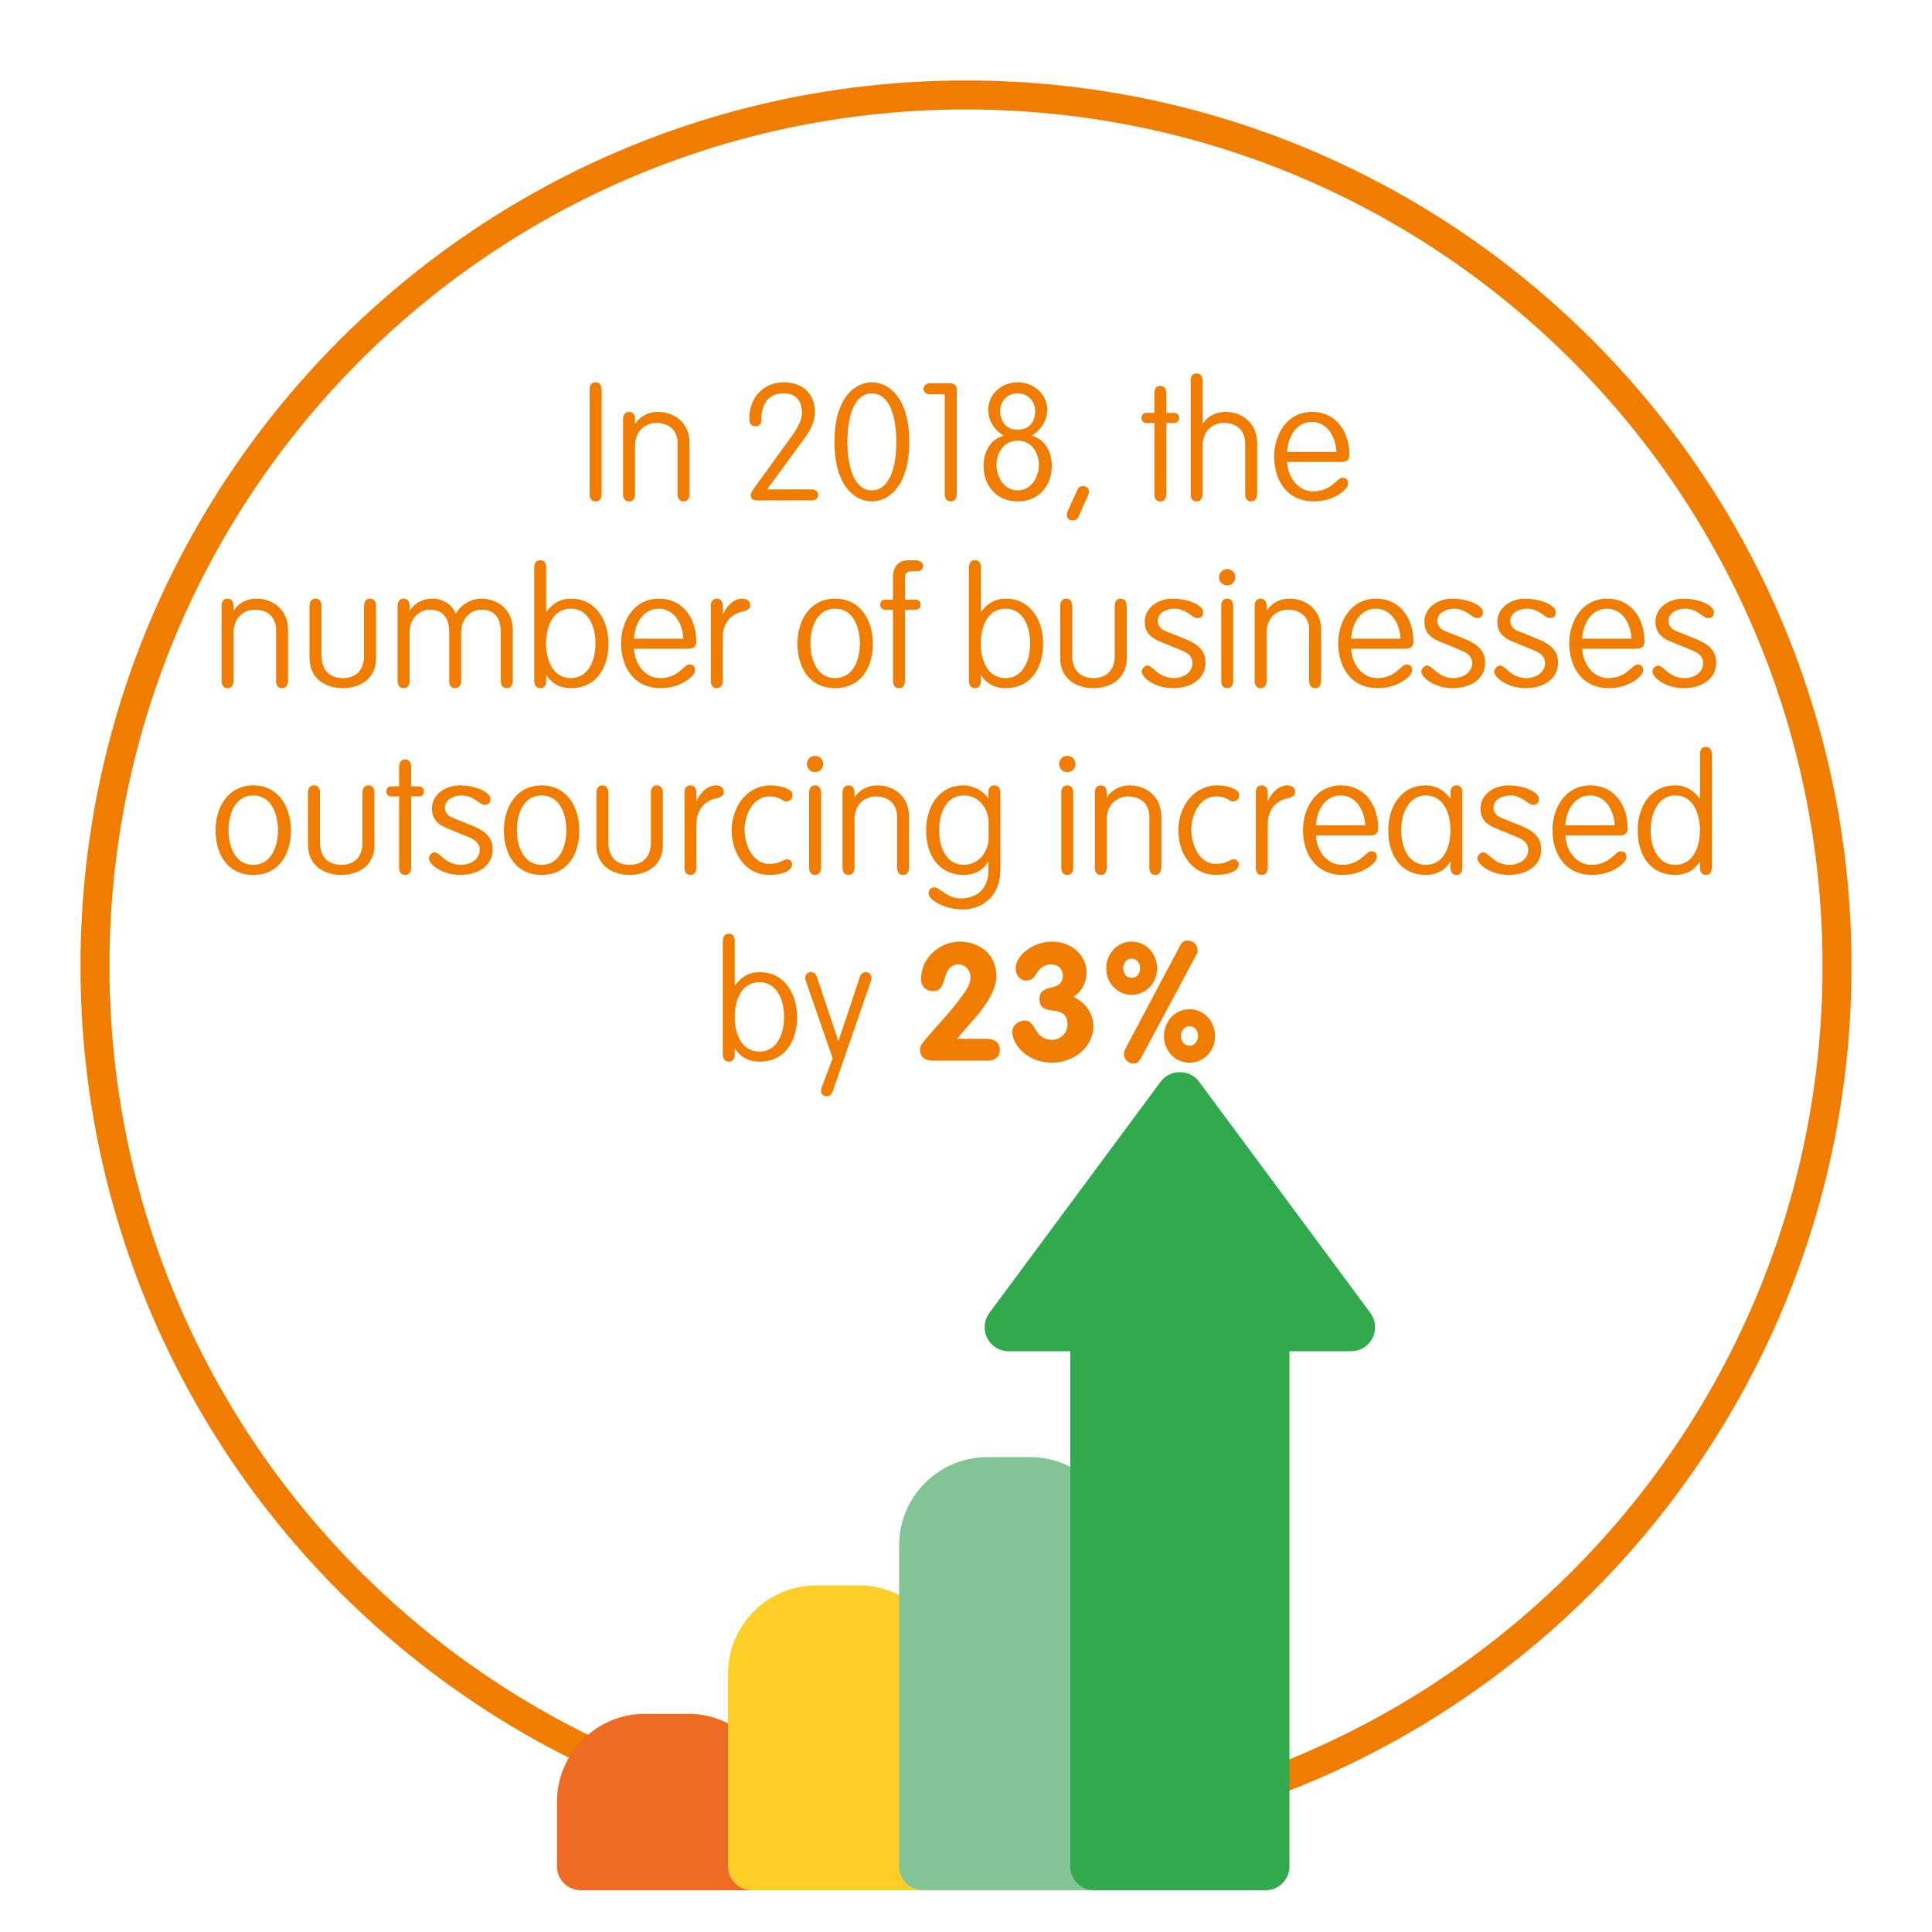 In 2018, the number of businesses outsourcing increased by 23%